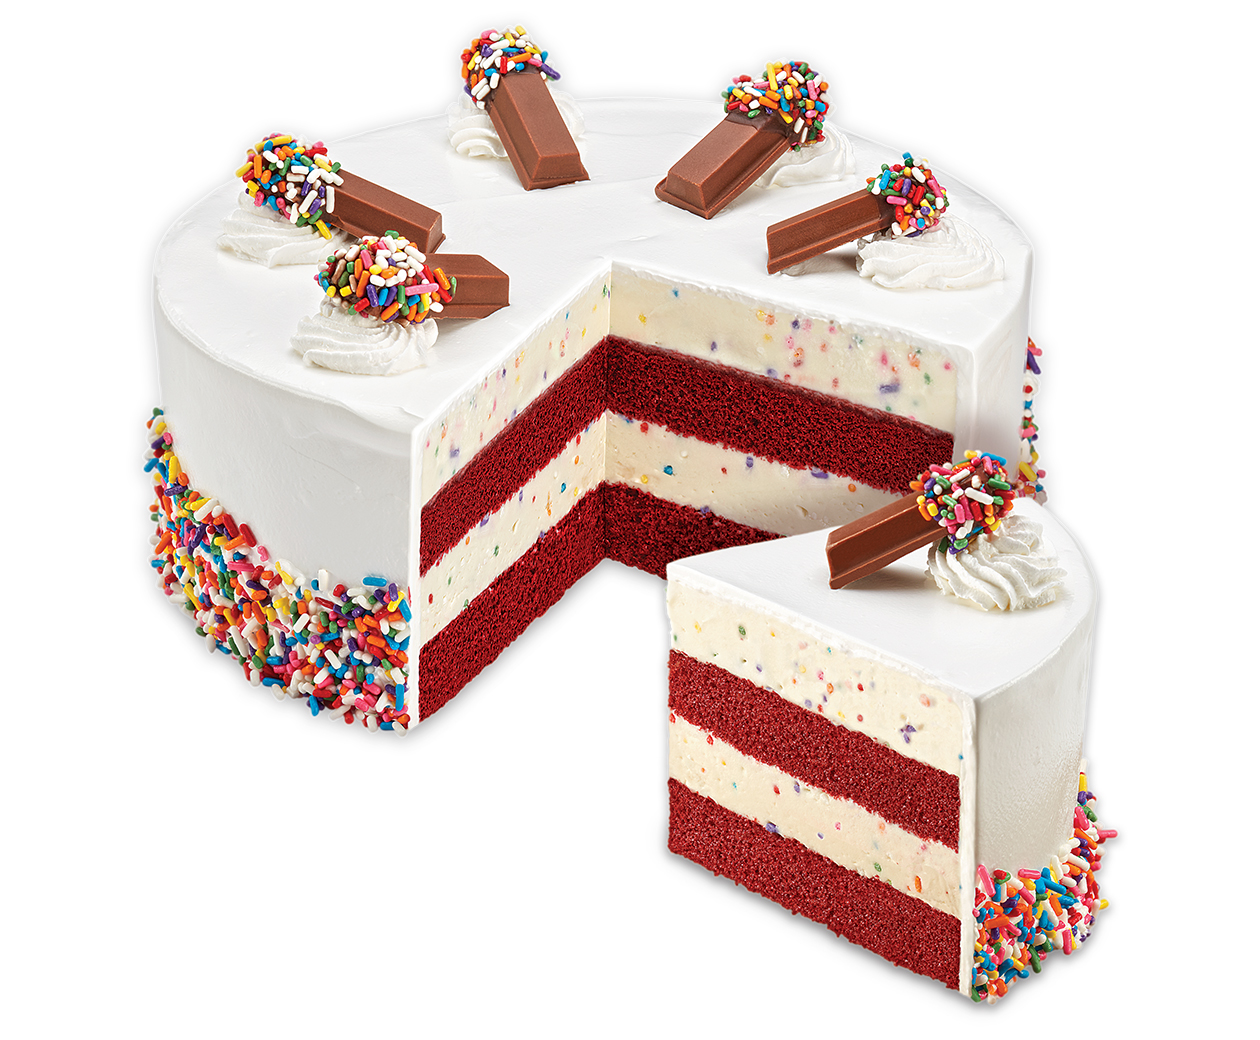 Fantastic Cakes Made With Your Favorite Ice Cream At Cold Stone Creamery Personalised Birthday Cards Rectzonderlifede